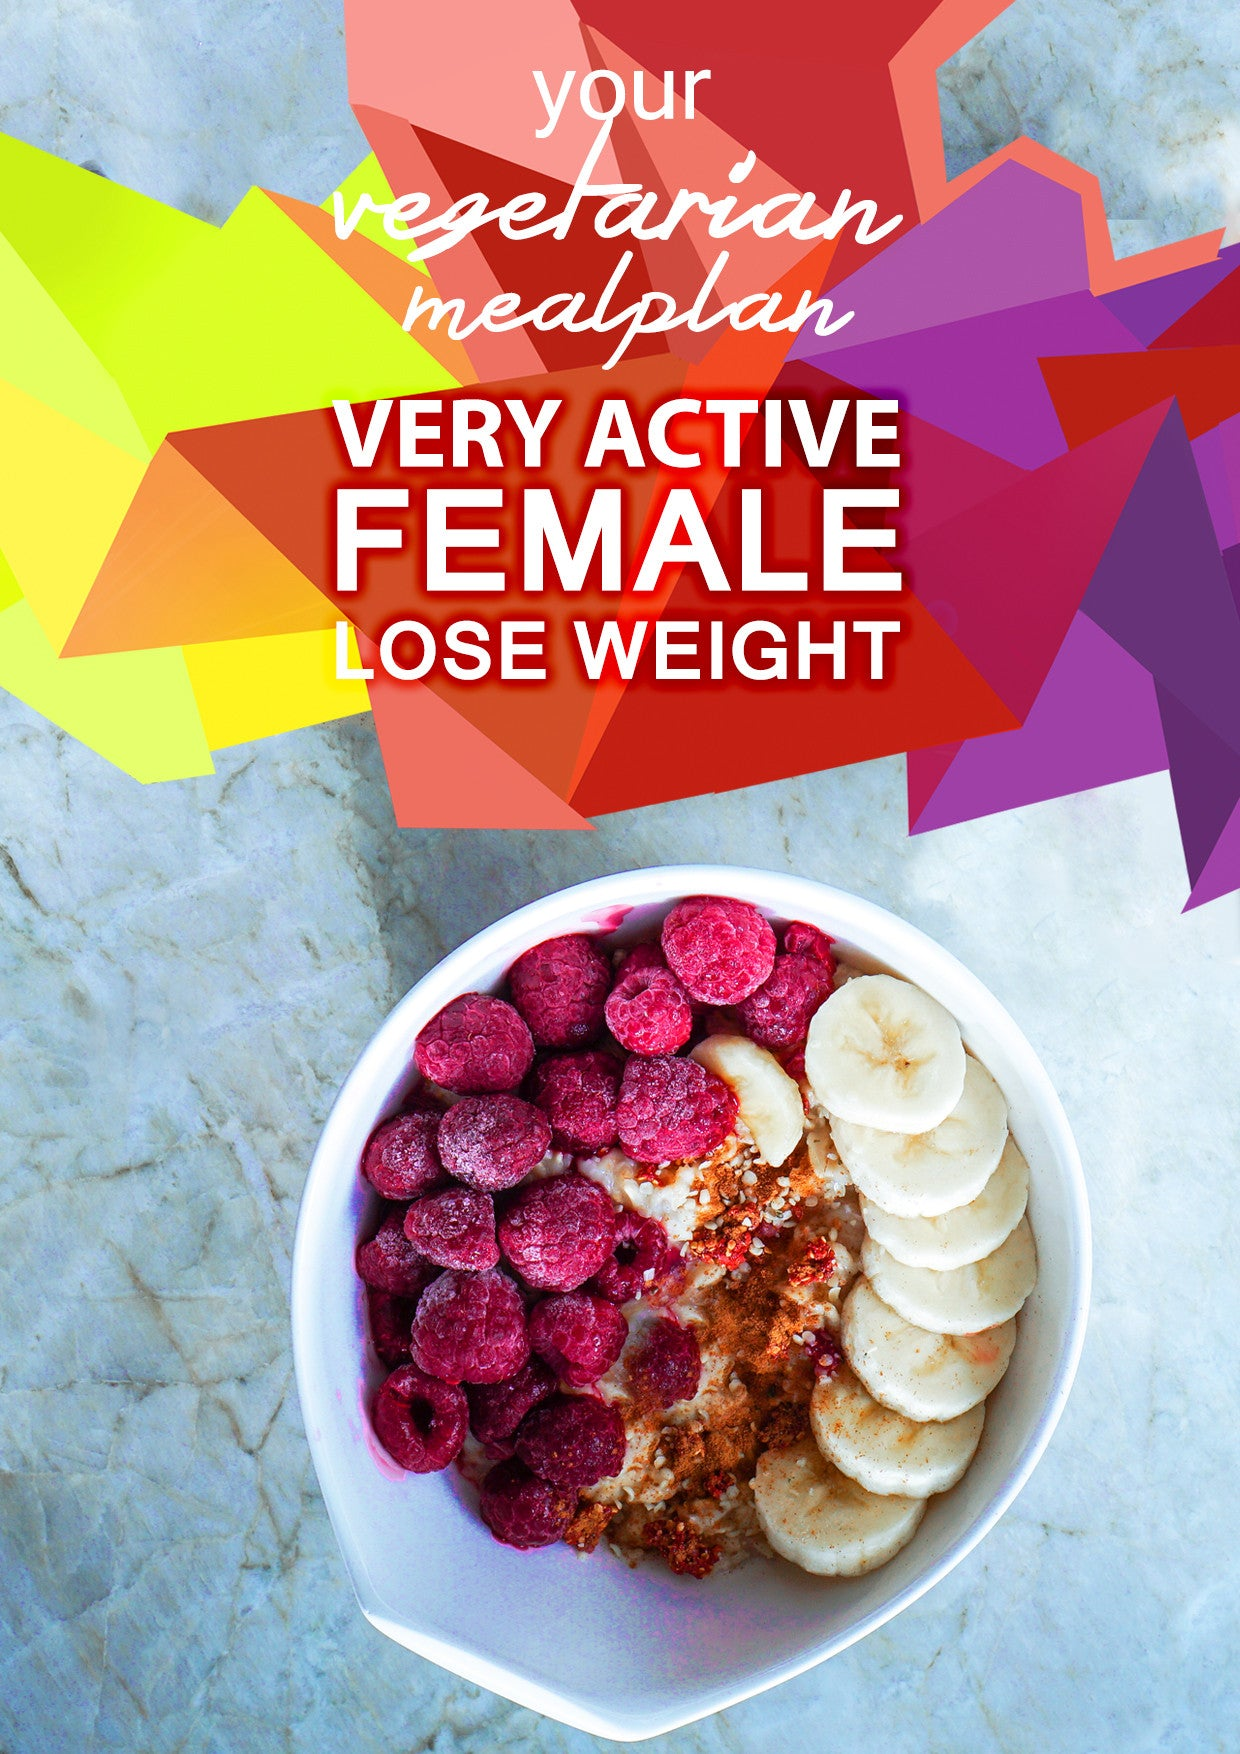 Vegetarian Very Active Female - Lose Weight